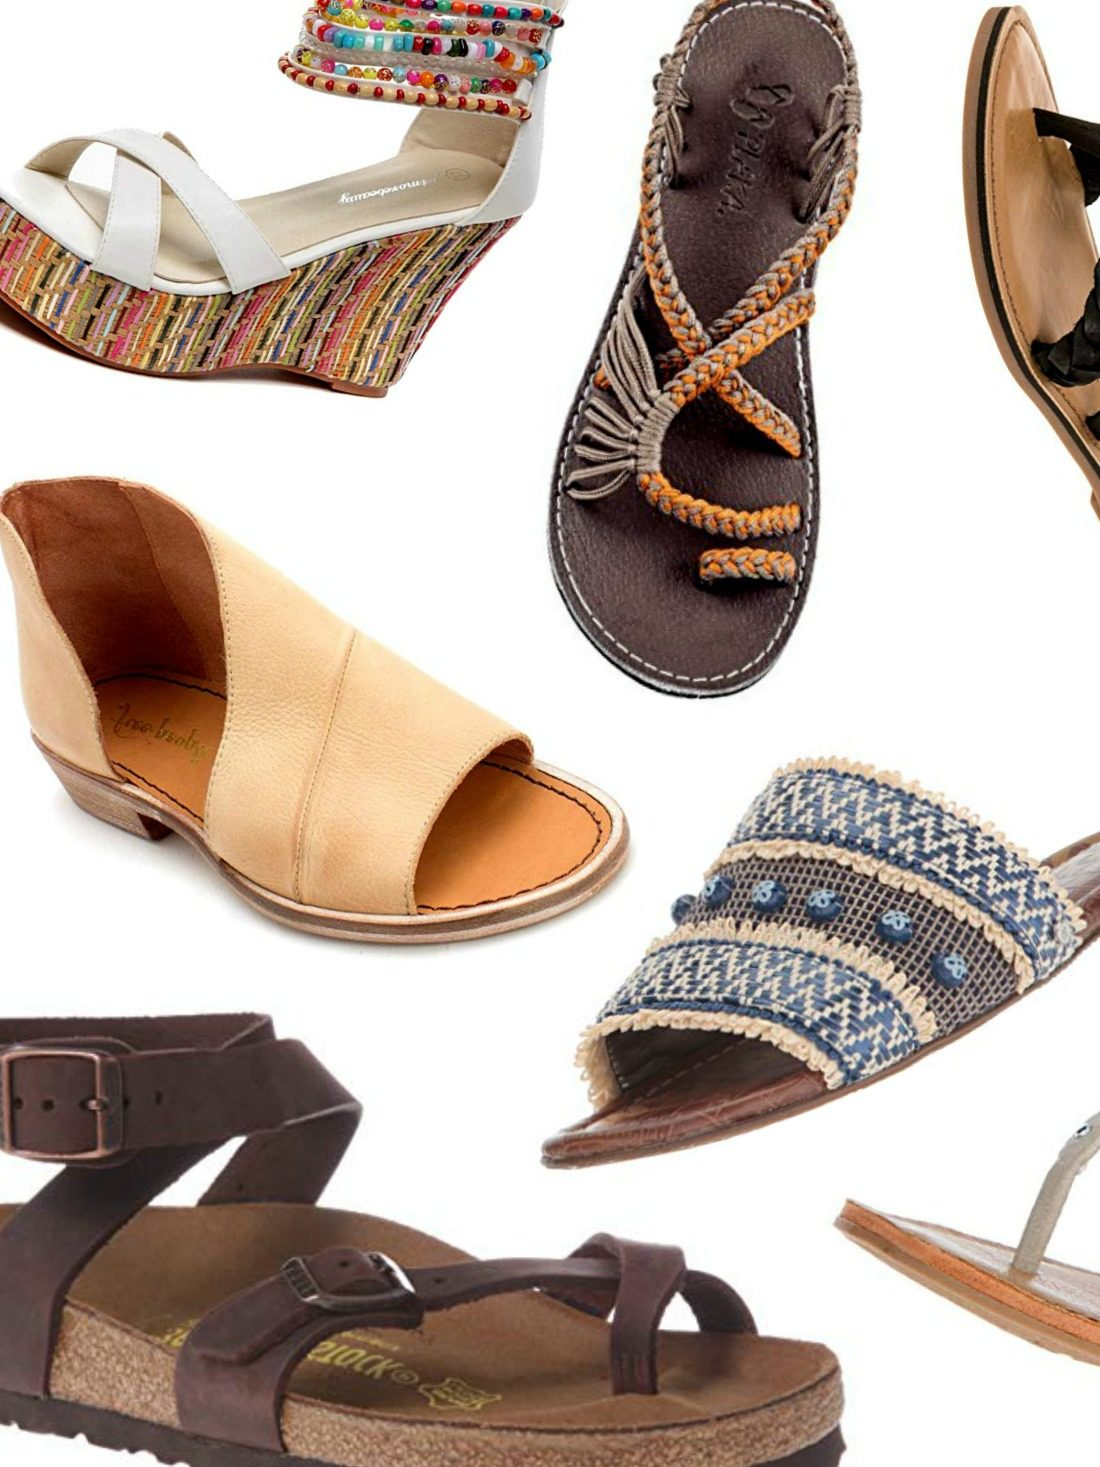 Make Summer a Bohemian affair with our list of the best boho sandals. From chic to comfy to extra preppy, we've got you covered!